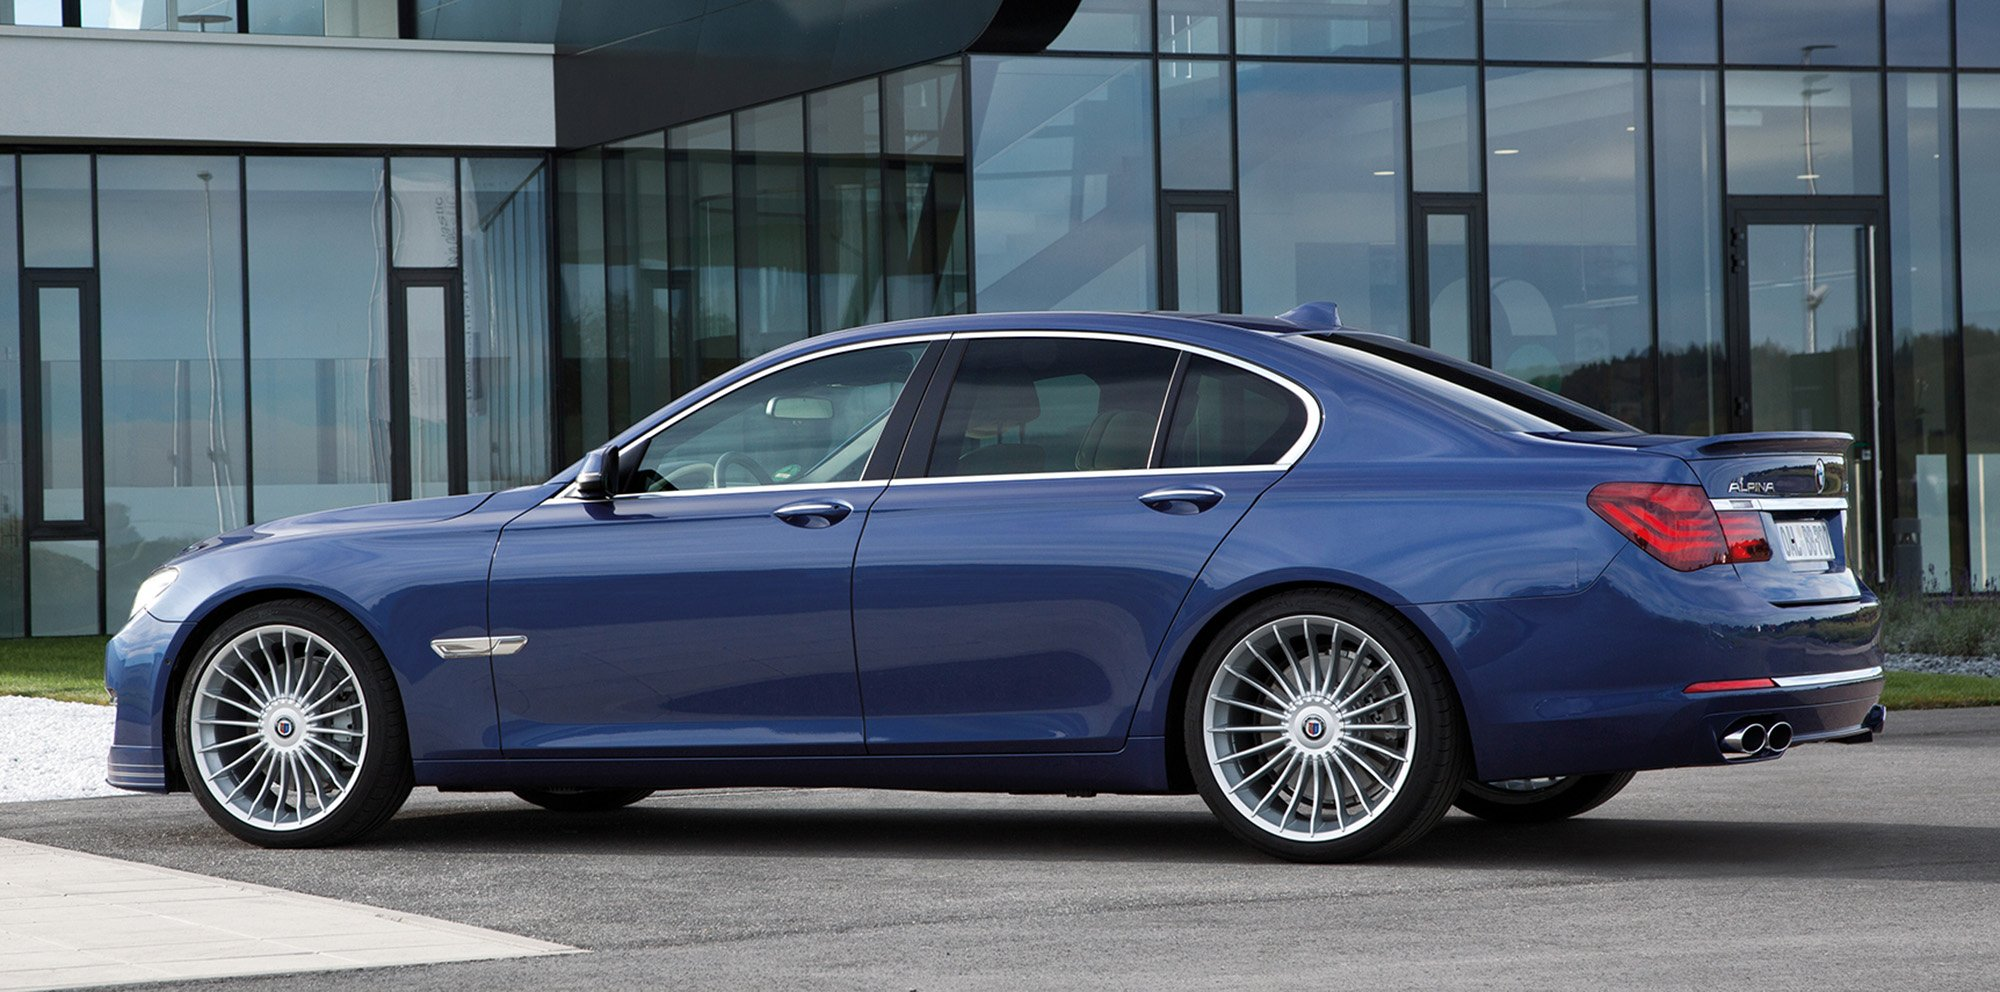 front motion automobile review bmw in price one week more news view magazine alpina show xdrive